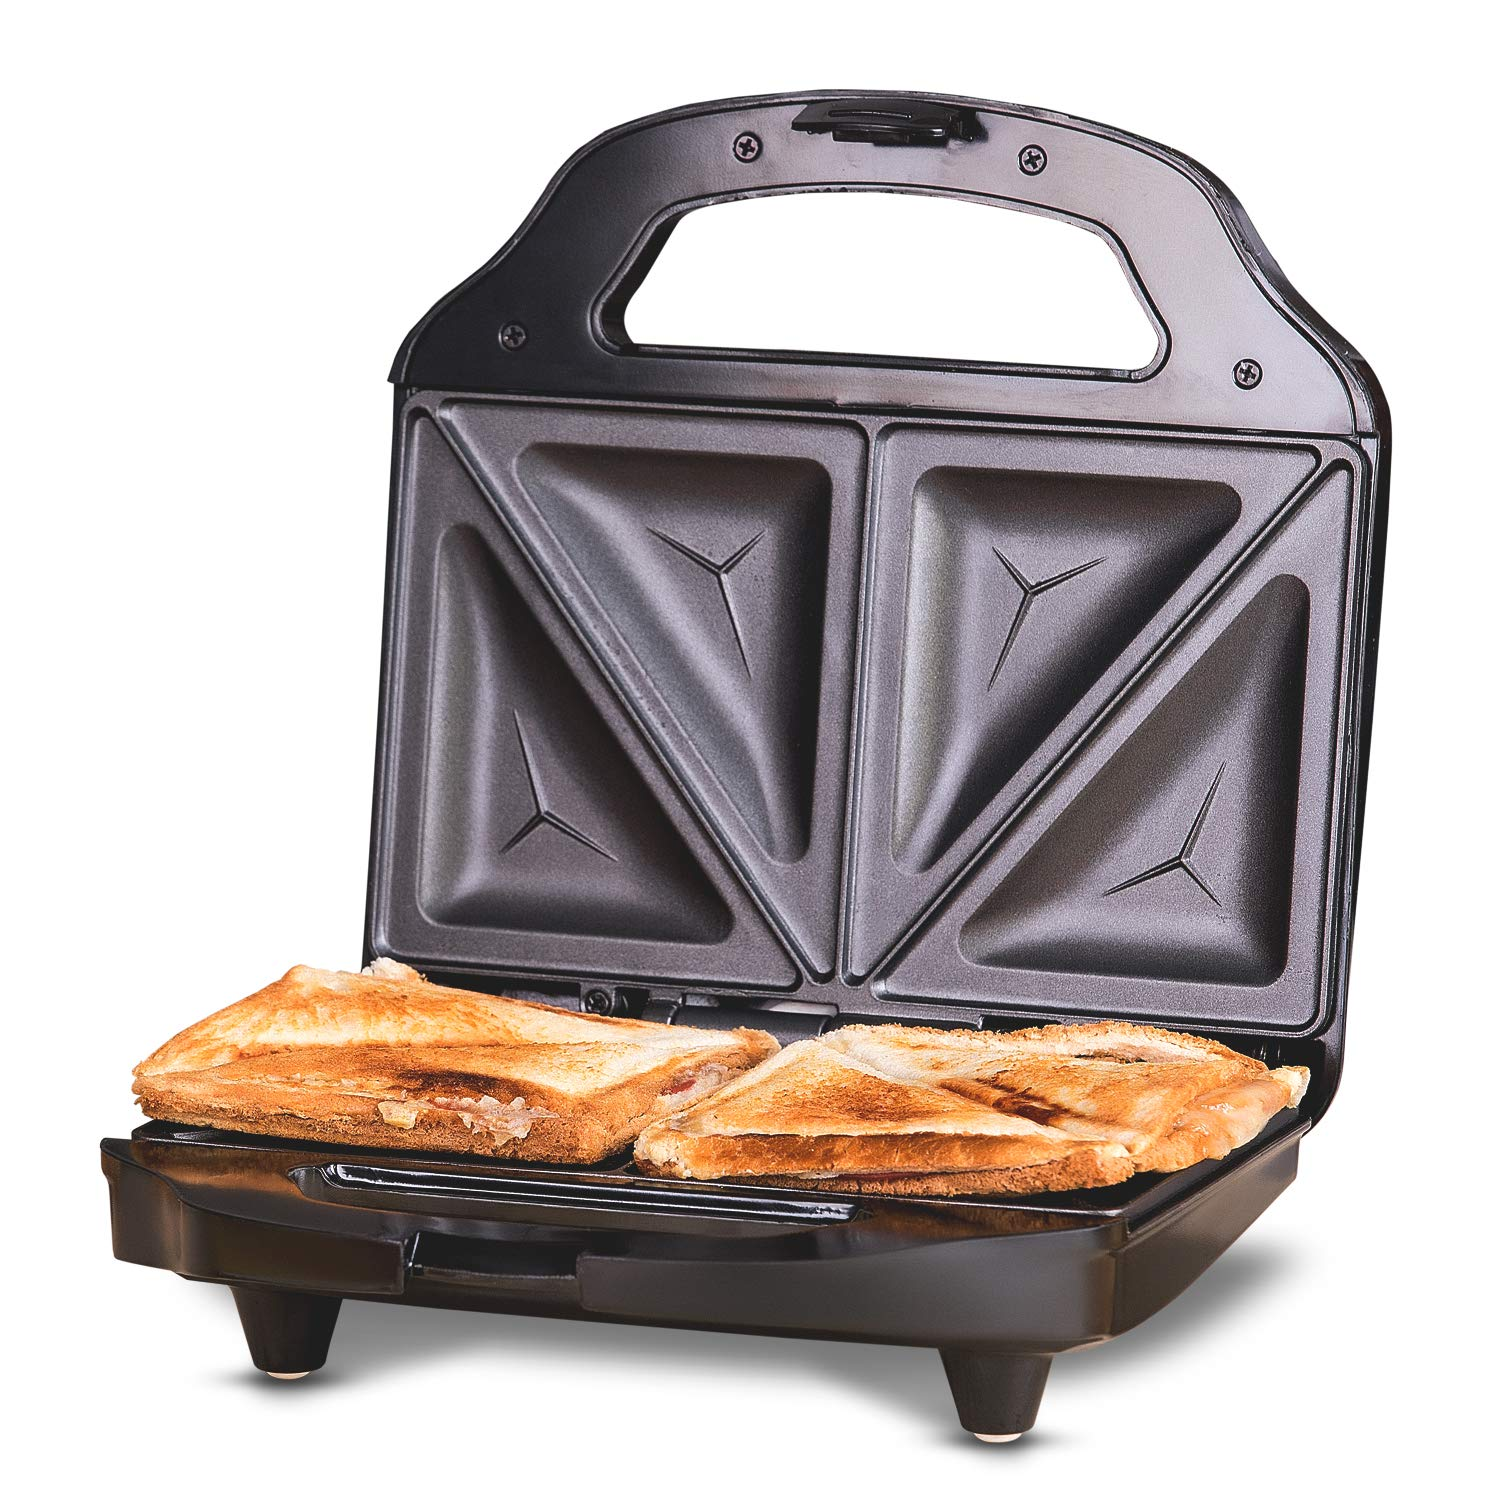 Cooks Delicious Crispy Sandwiches Geepas 800W 2 Slice Sandwich Maker Breakfast Sandwiches /& Cheese Snack 2 Years Warranty Cool Touch Handle Automatic Temperature Control and Non-Stick Plate